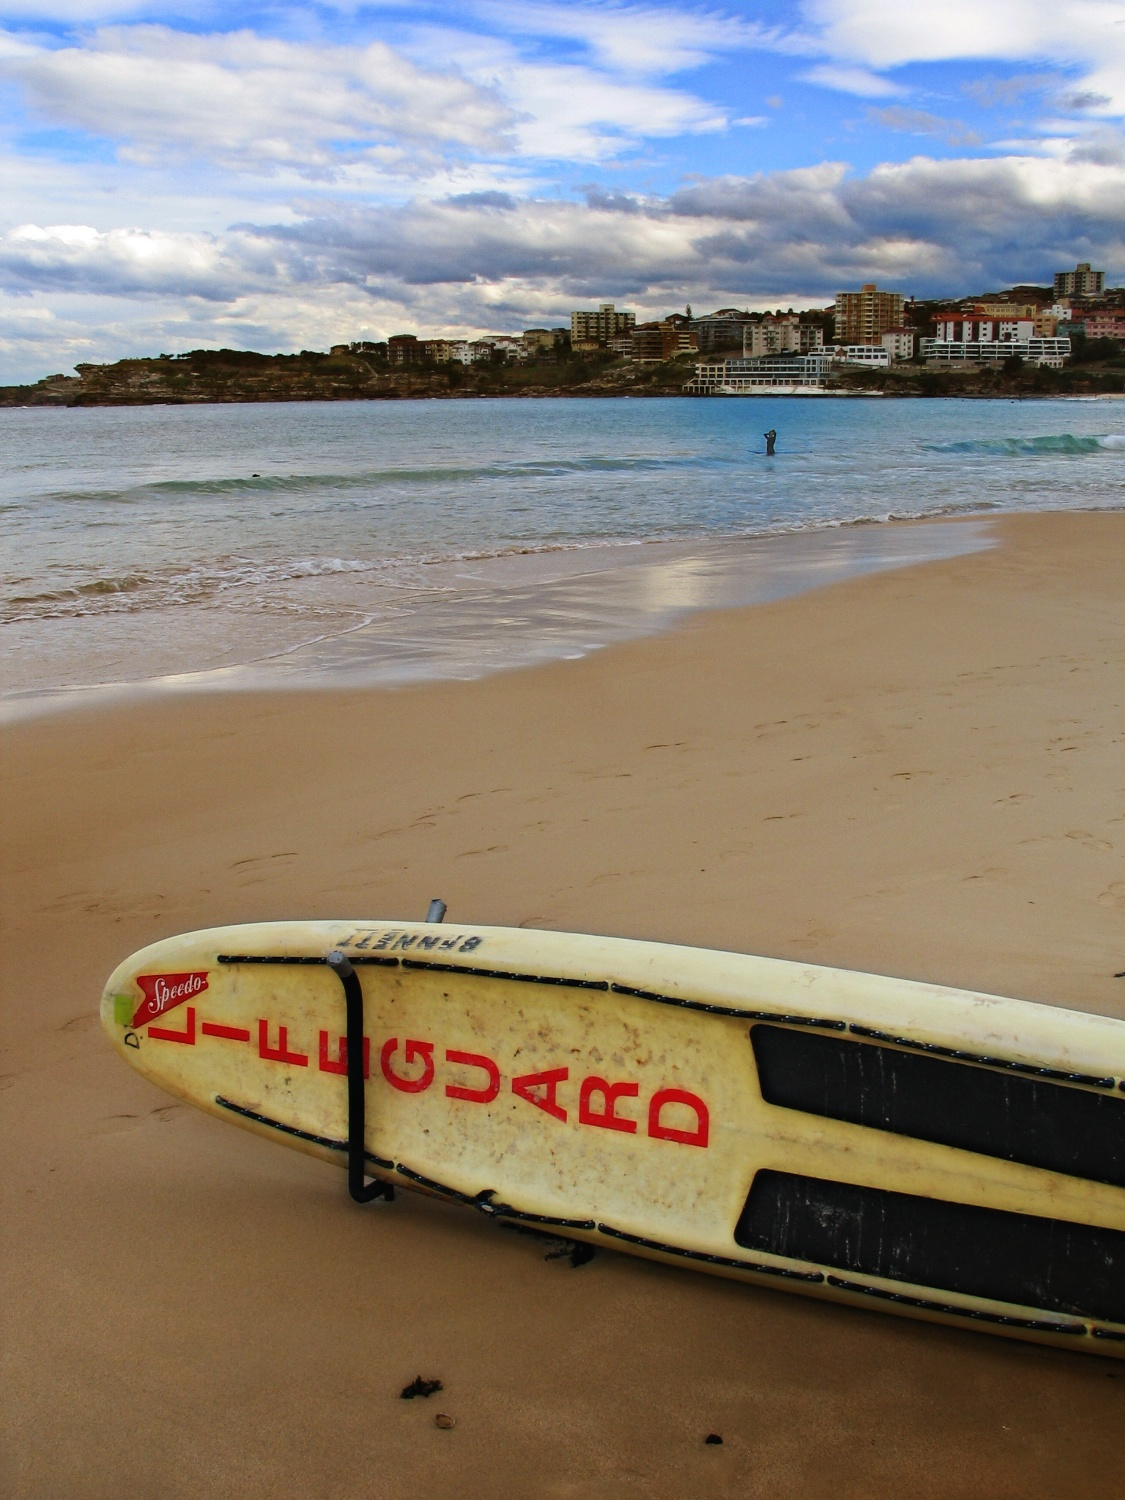 The traditional lifeguard's surfboard and a lonely woman surfer in the background at famous Bondi Beach, Australia. Shot in the winter of 2004.